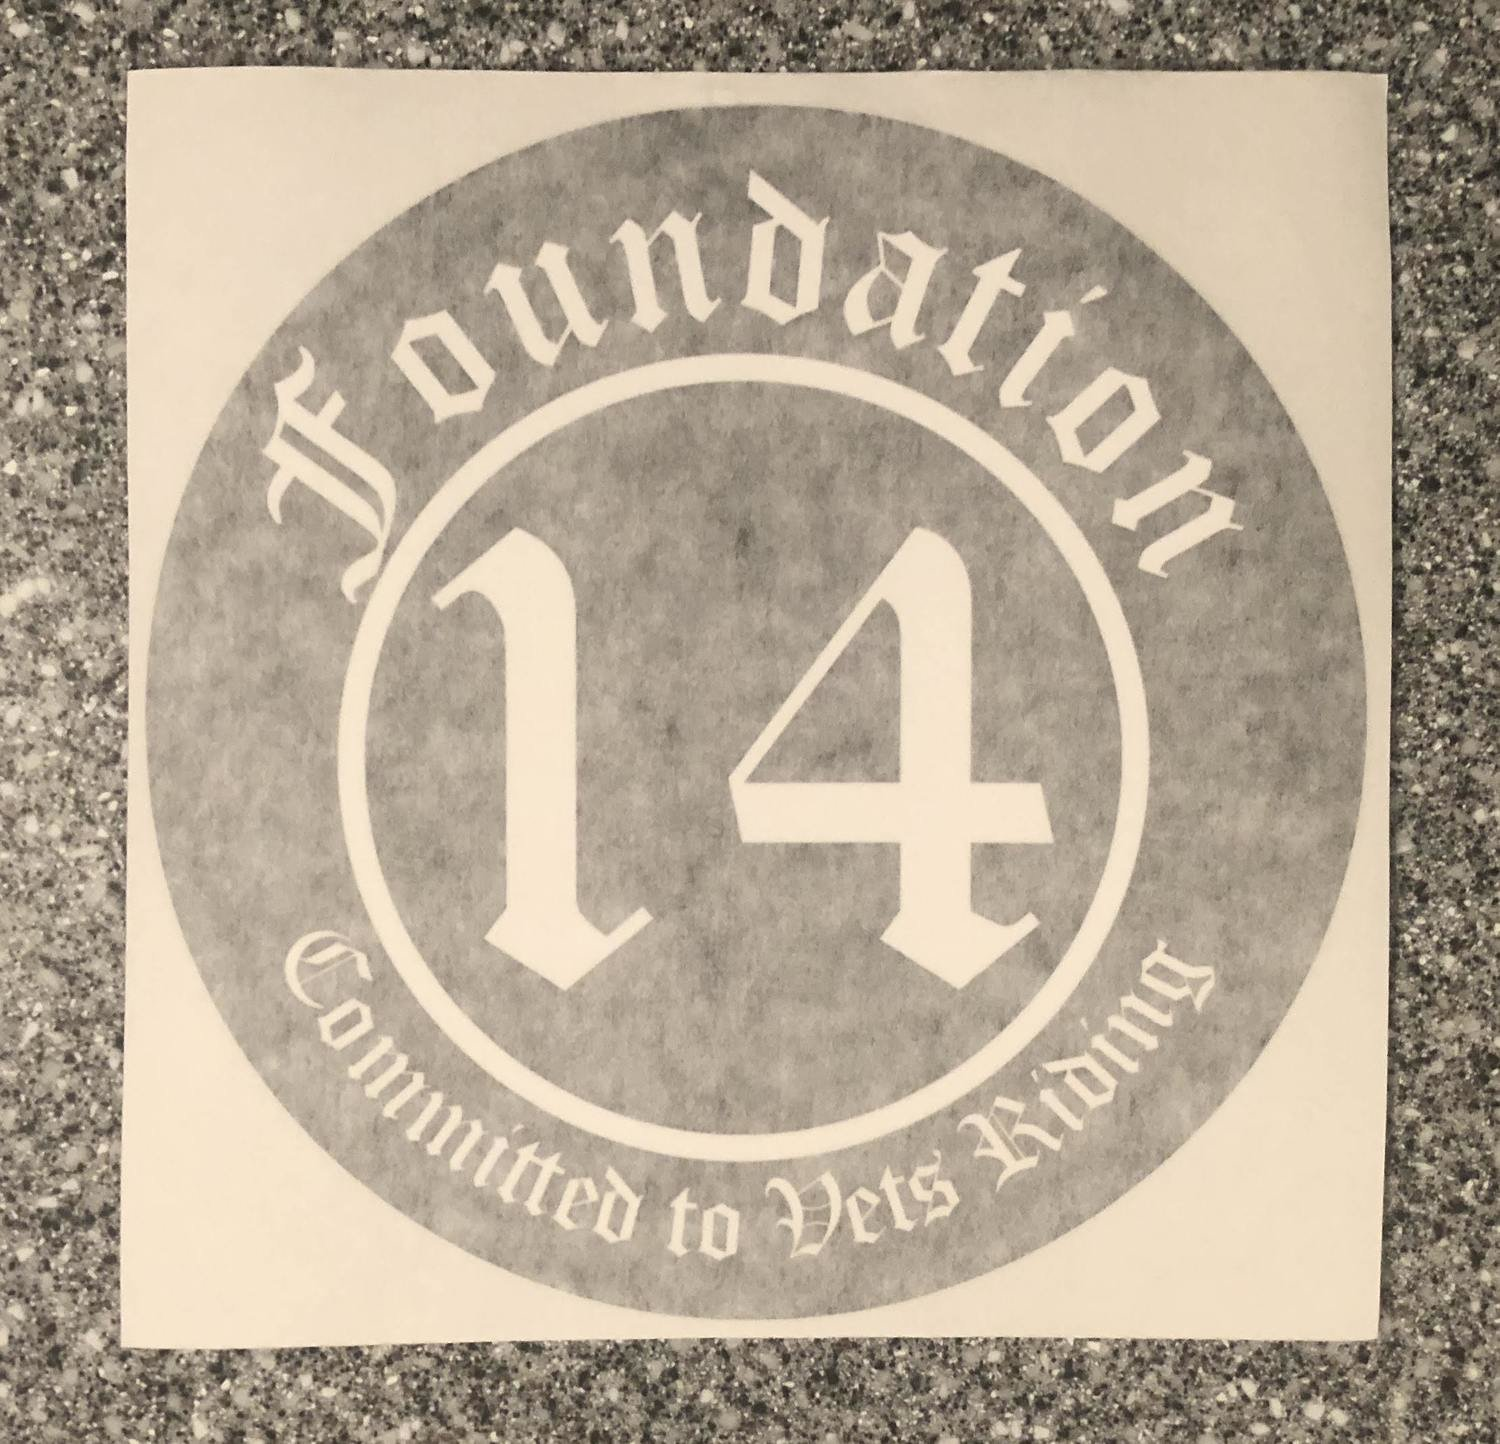 6 Inch Decal-Committed to Vets Riding-2 Options